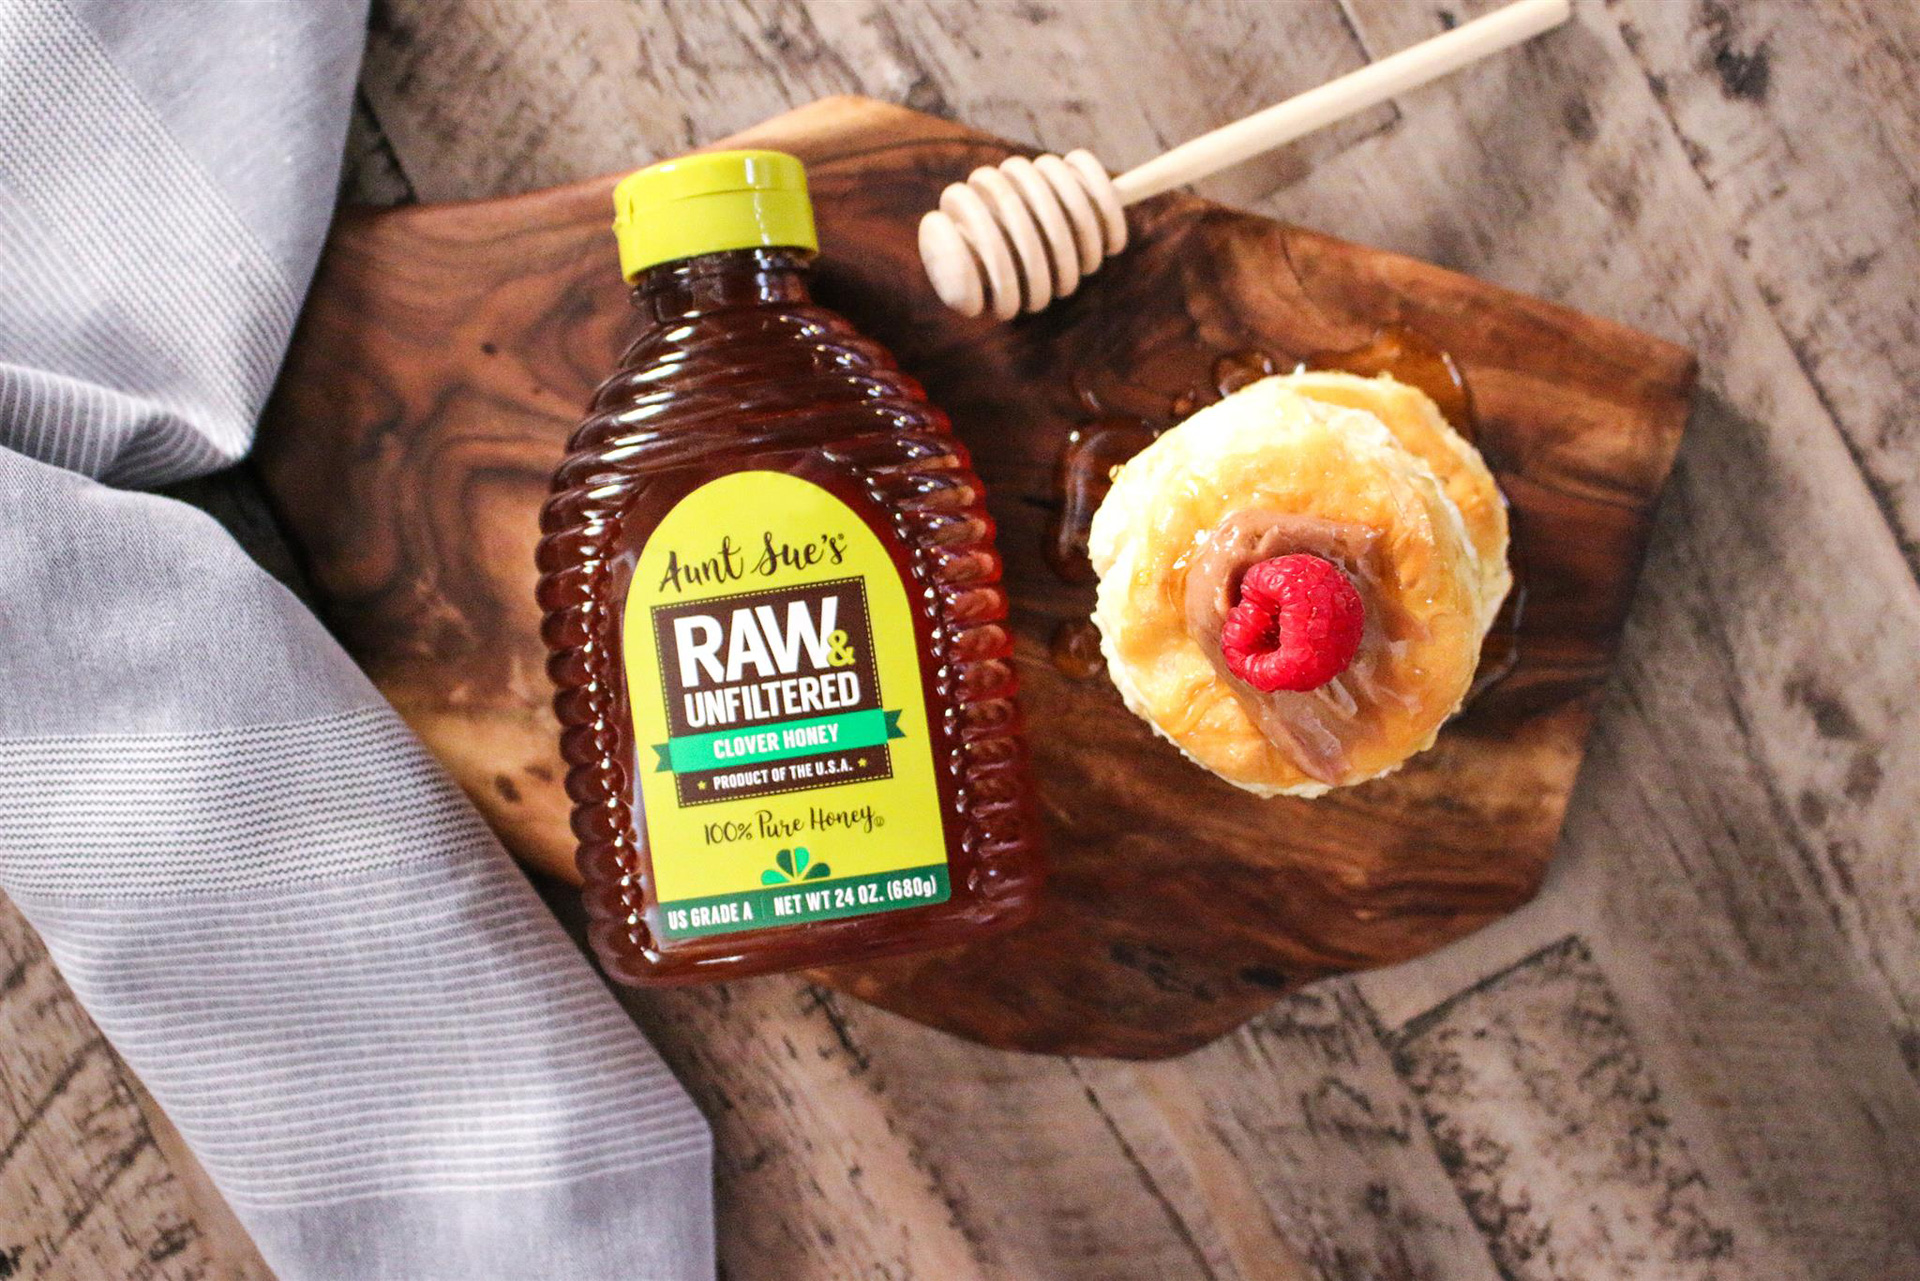 Aunt Sue's Raw & Unfiltered Honey Bottle with Pastry and Honey Dipper